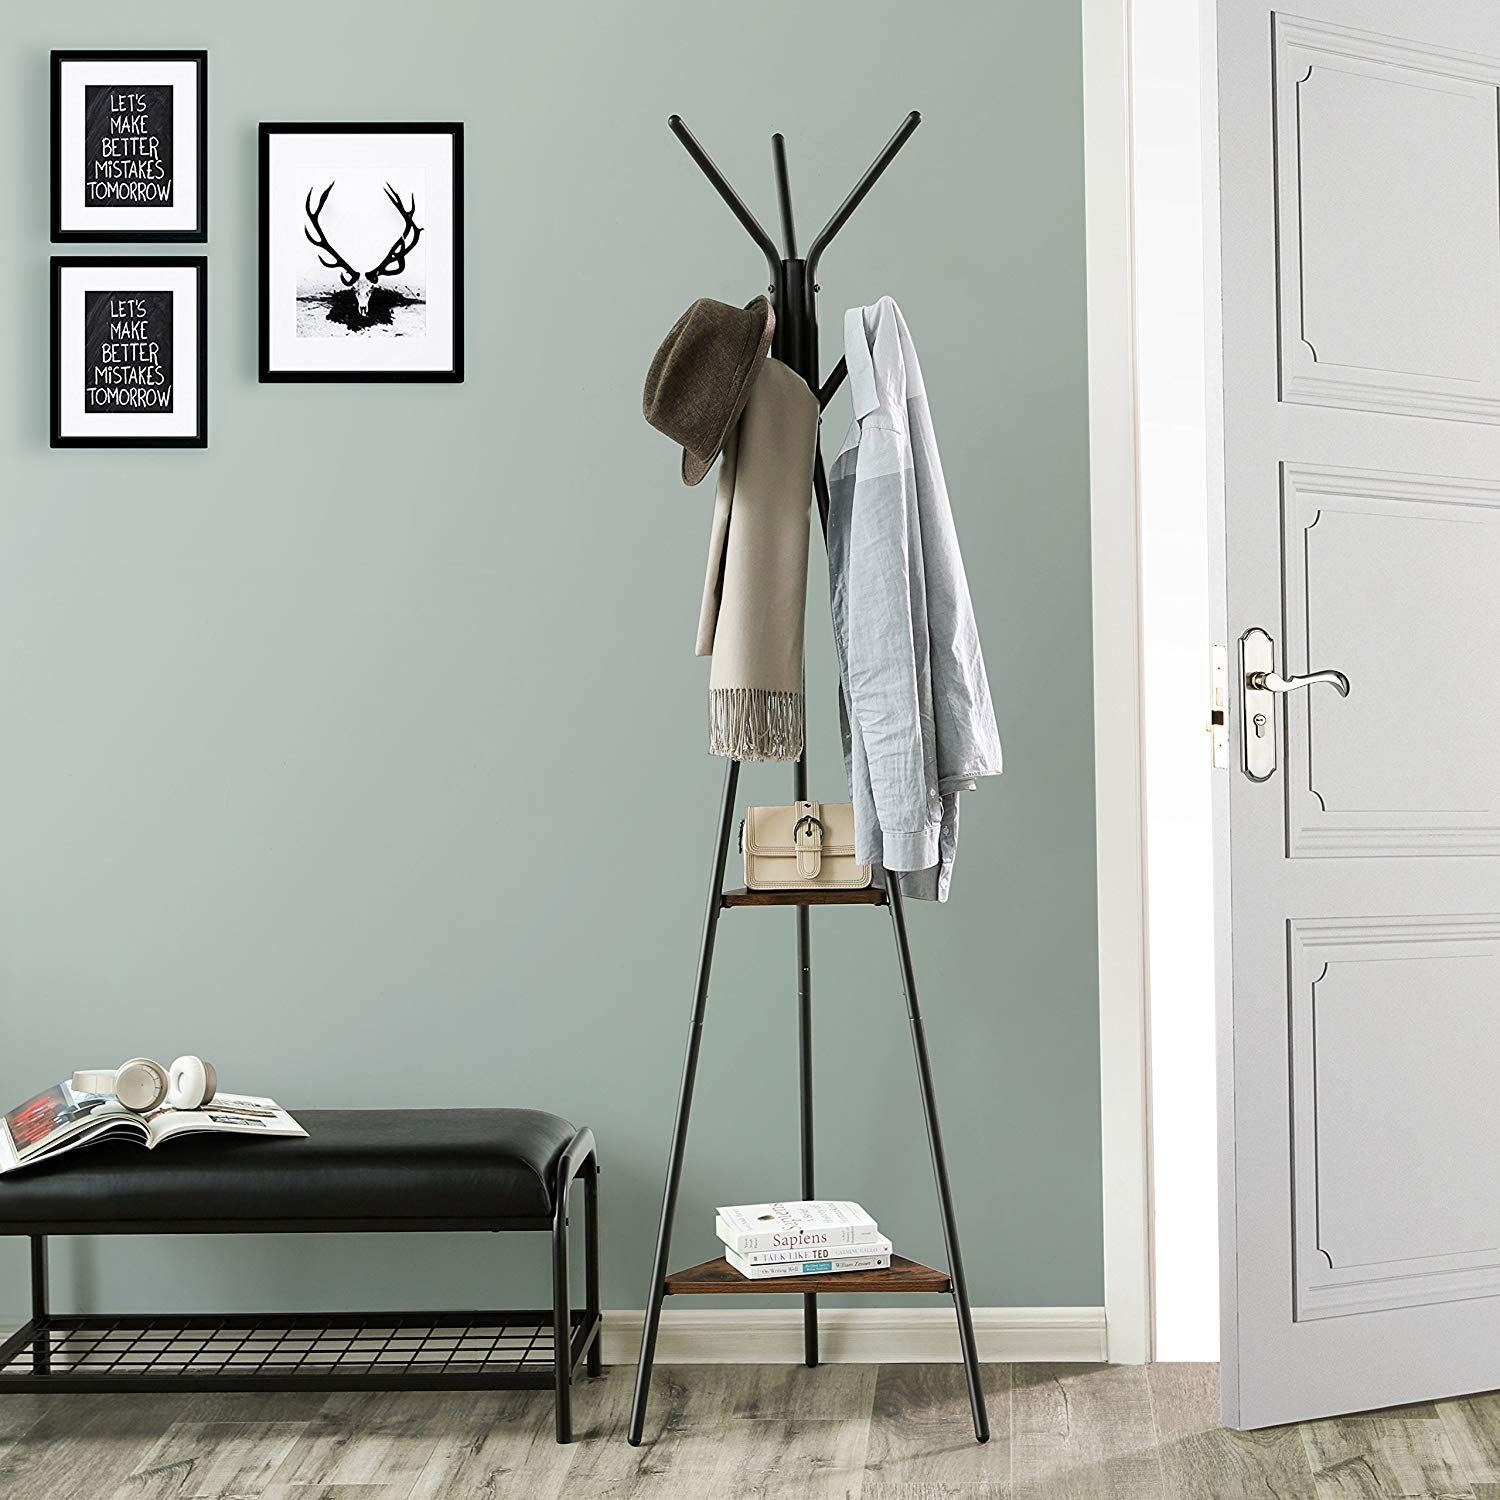 Songmics Coat Rack Stand Coat Tree Hall Tree Free Standing Industrial Style With 2 Shelves F Standing Coat Rack Standing Clothes Rack Coat Rack Wall